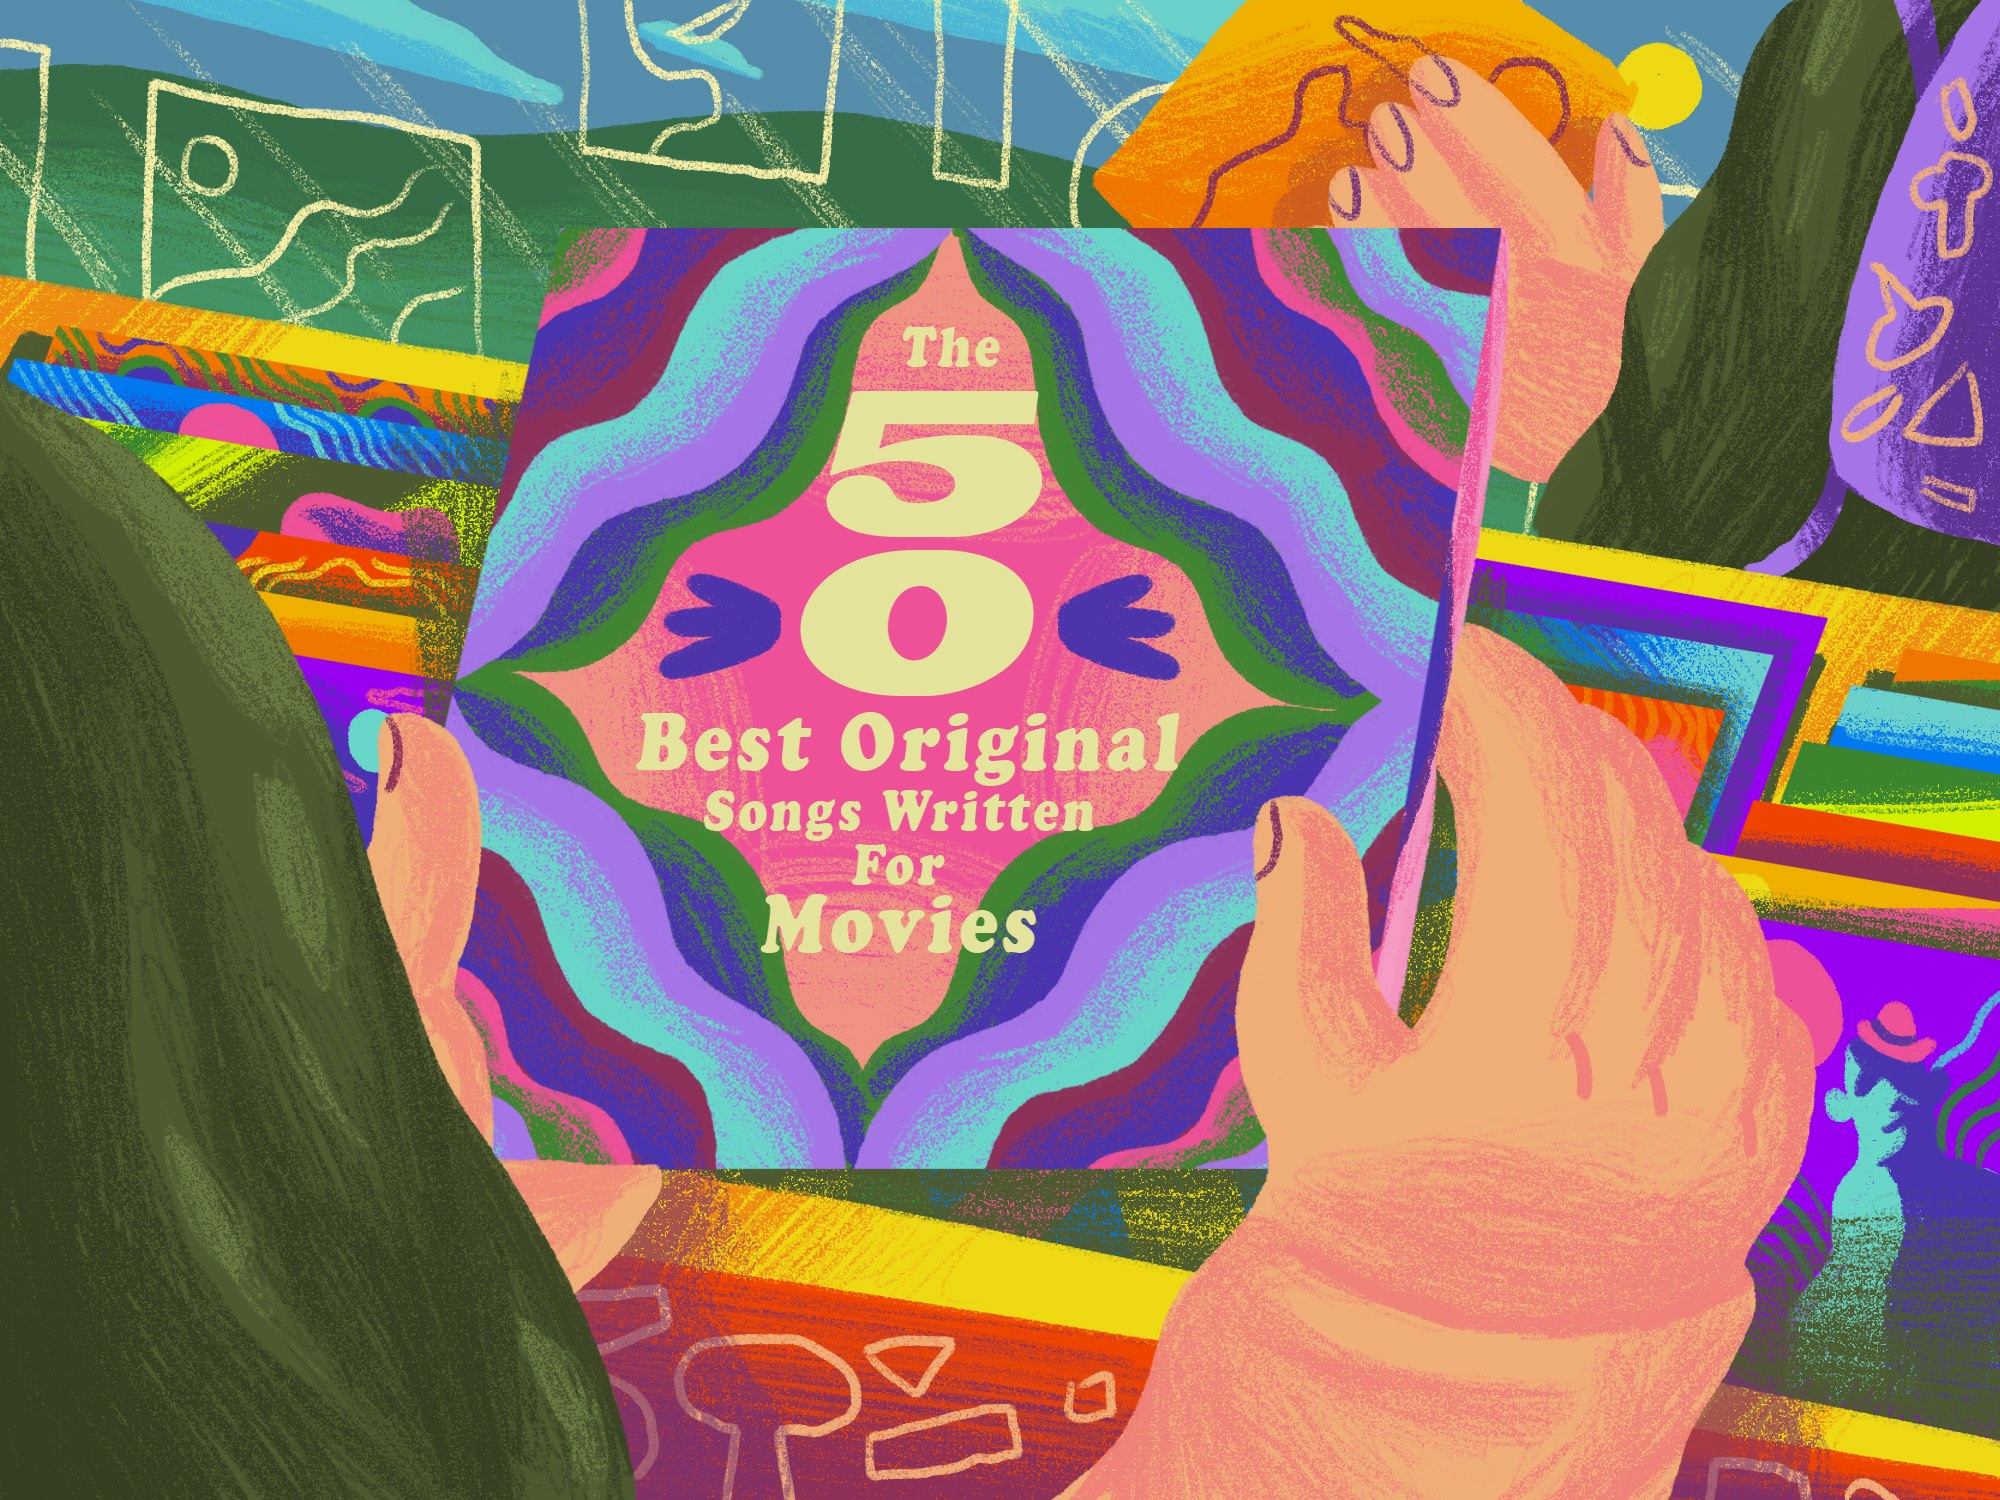 The 50 Best Original Songs Written for Movies